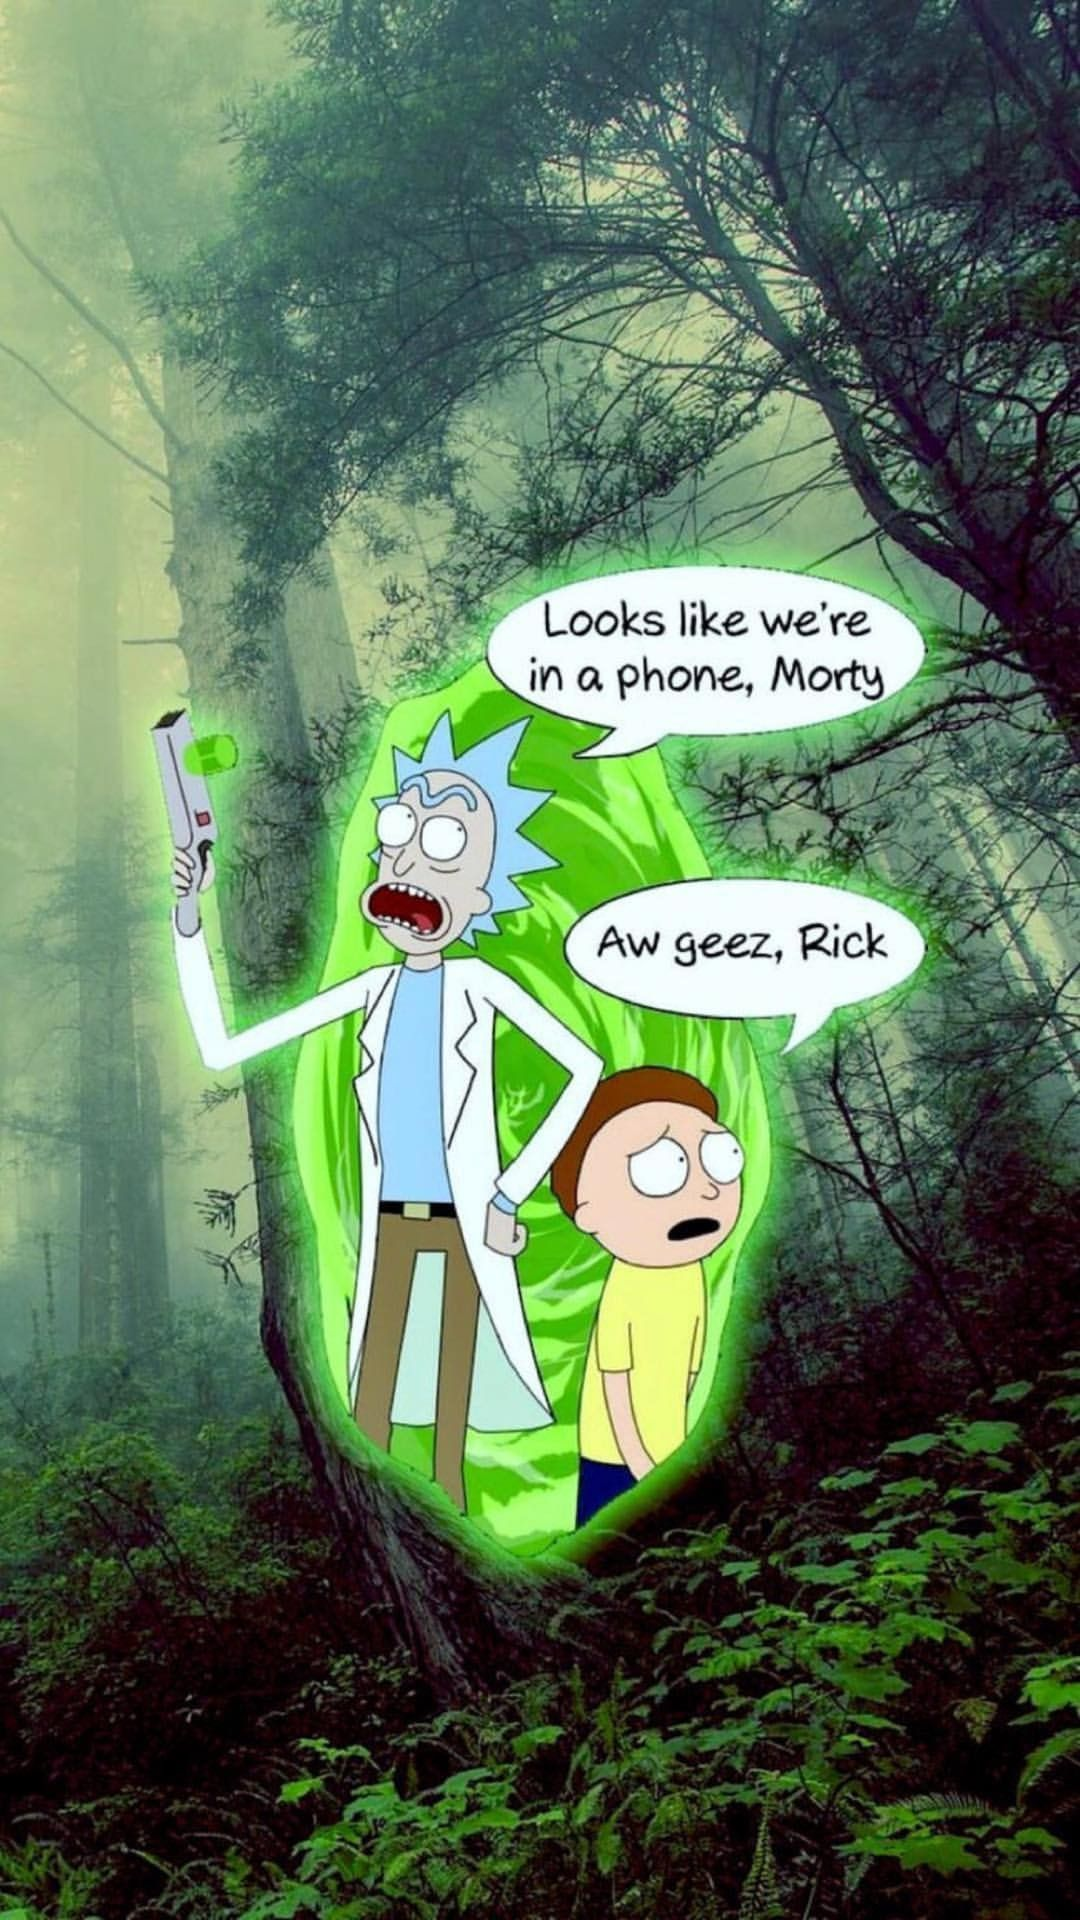 Pin By Sorex Araneus On Wallpaper Rick And Morty Quotes Iphone Wallpaper Rick And Morty Rick And Morty Poster